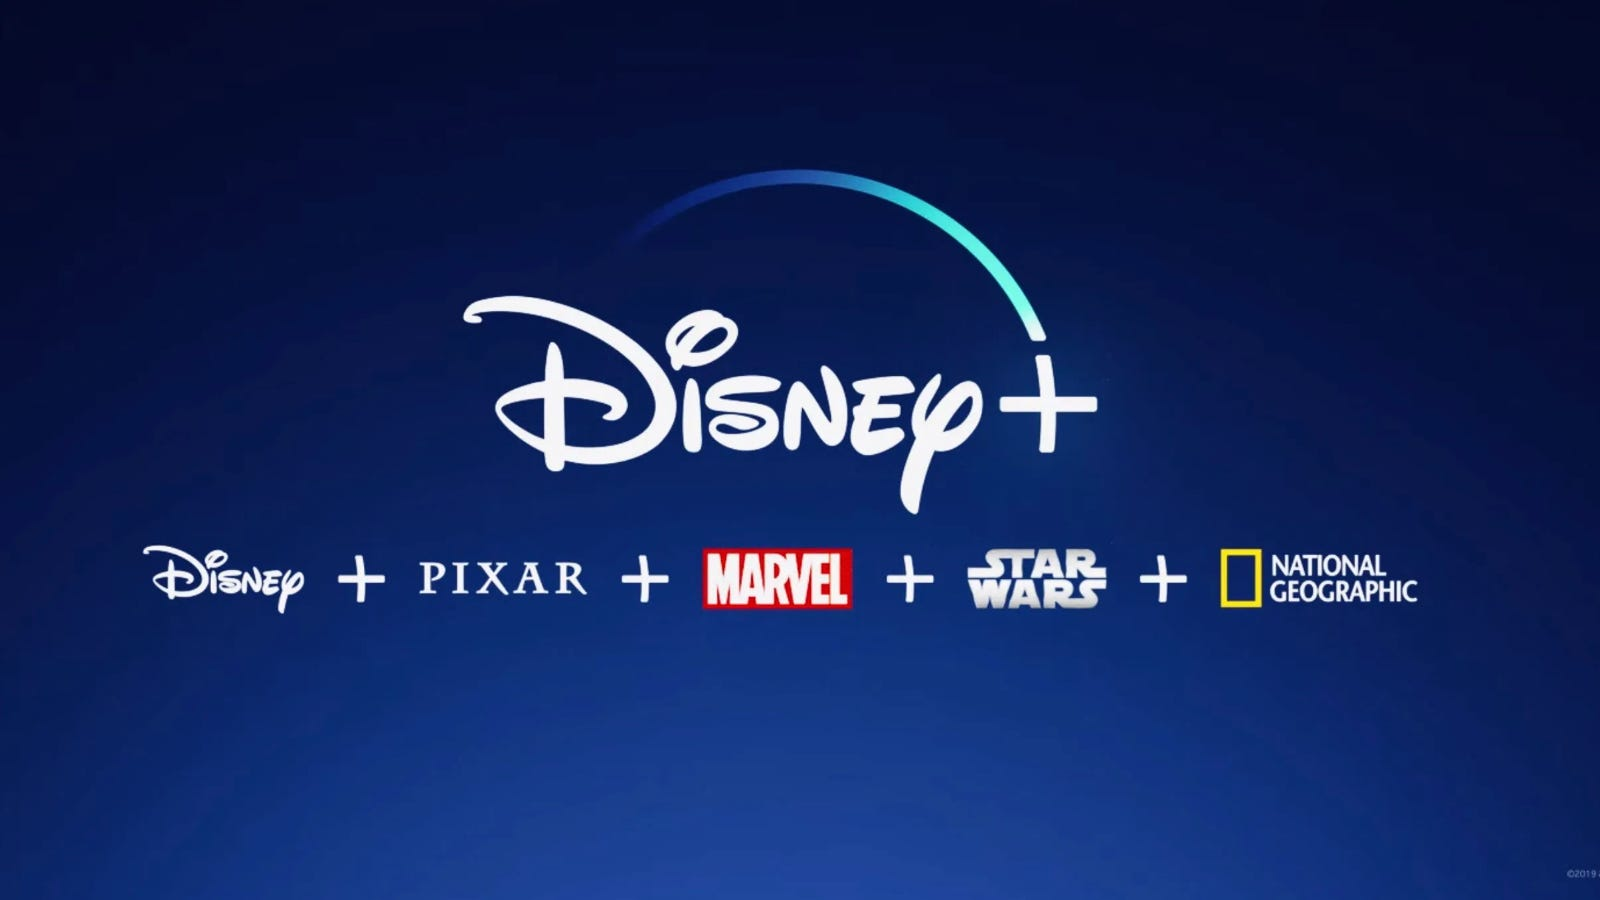 Disney+ Advertisement on blue gradient.